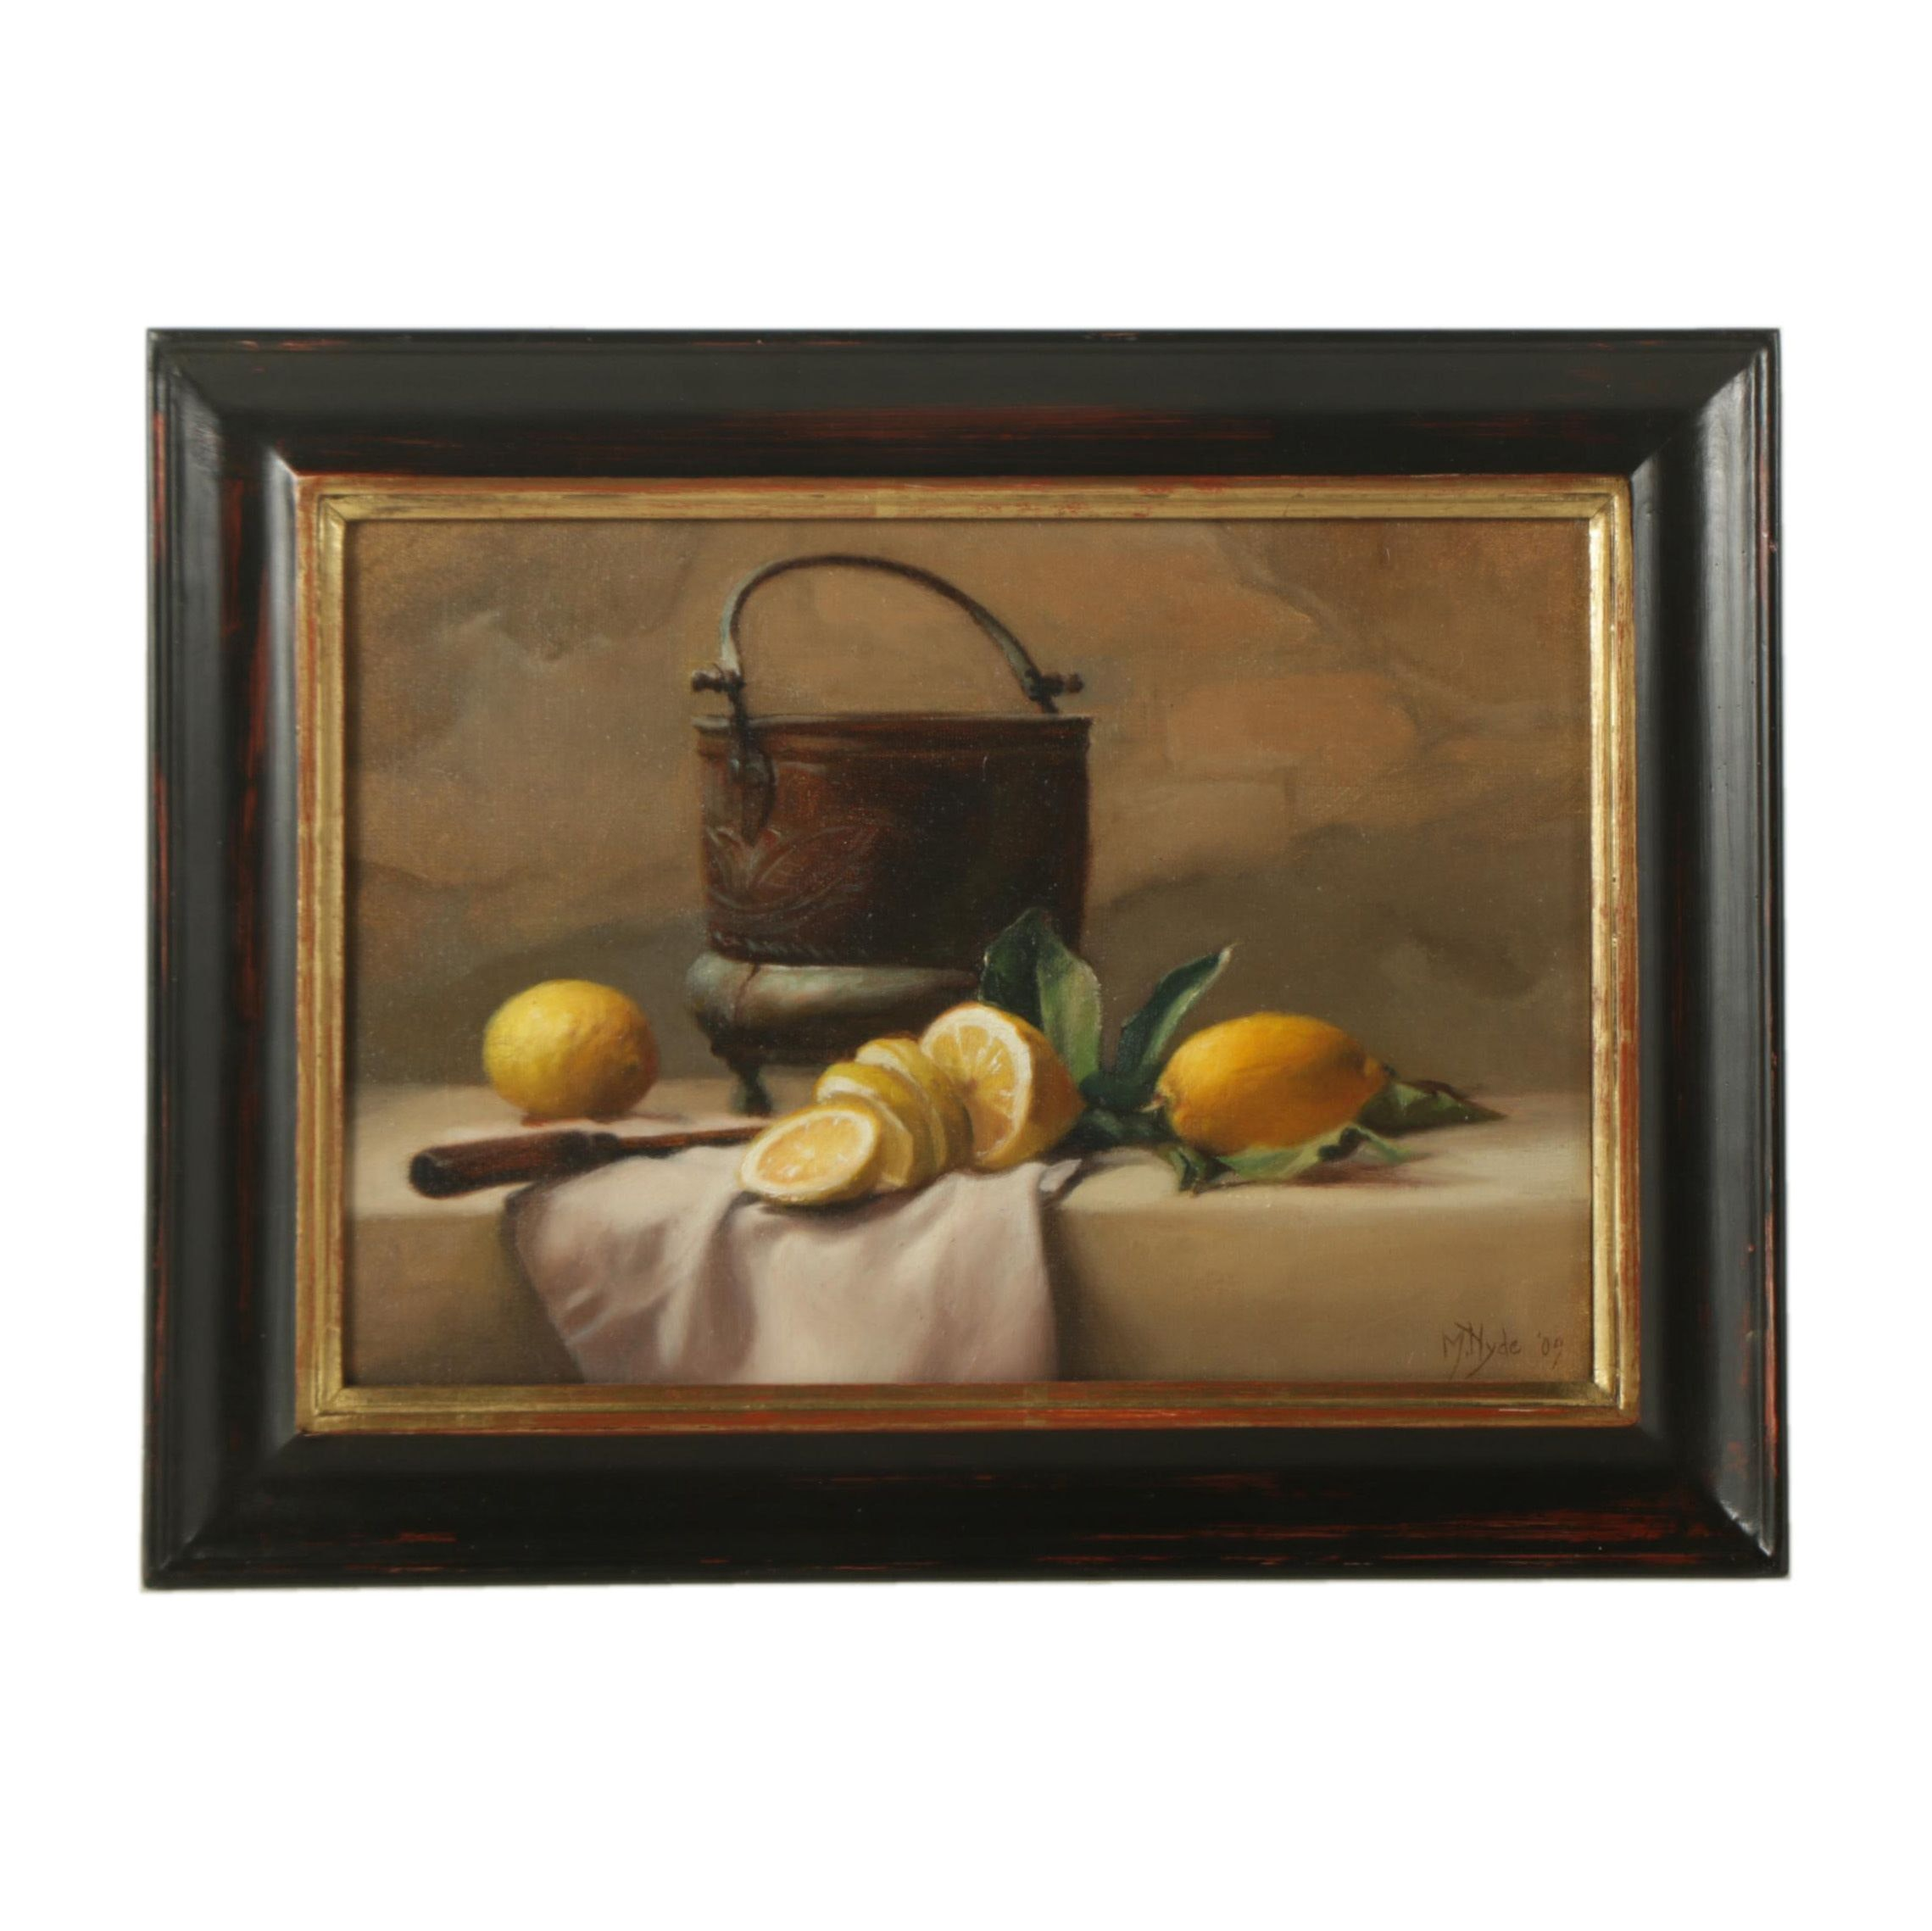 Maureen Hyde Oil Painting on Canvas of Still Life